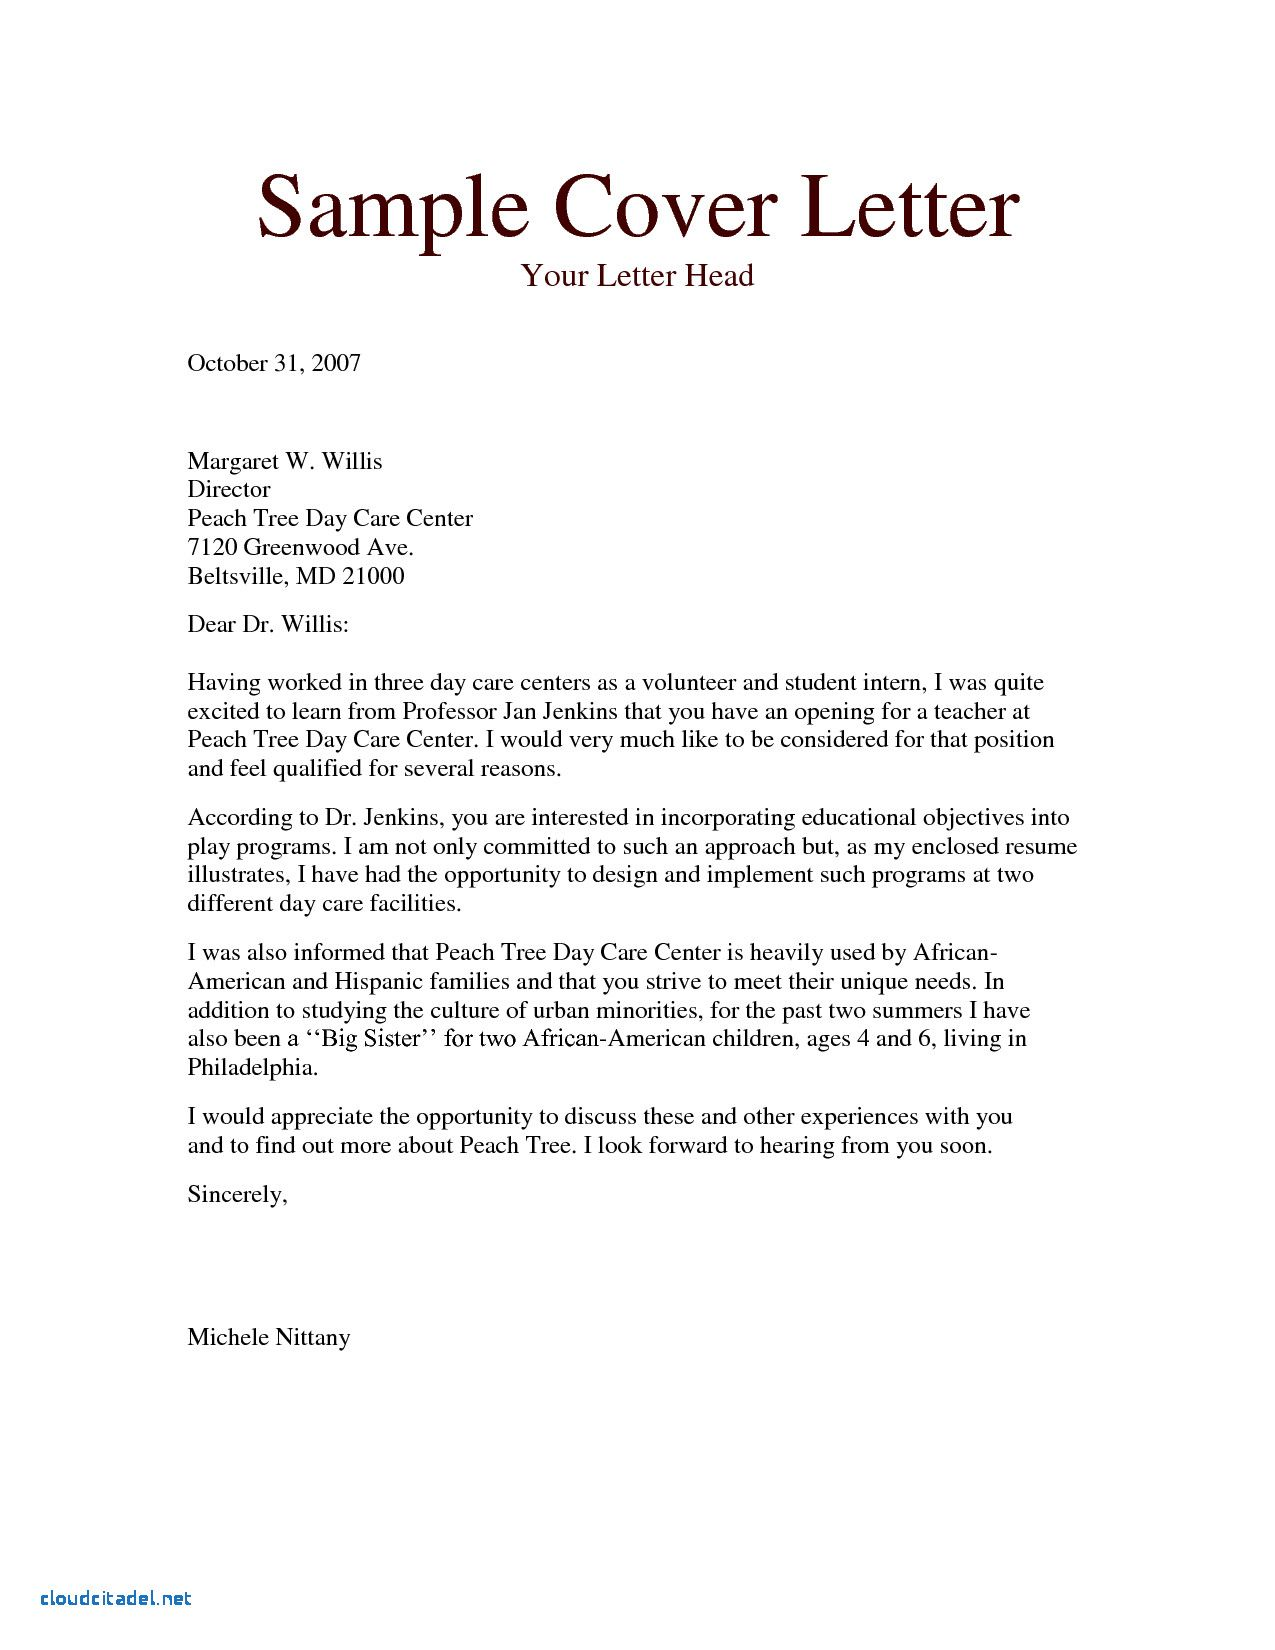 Pin by moci bow on Resume templates Pinterest